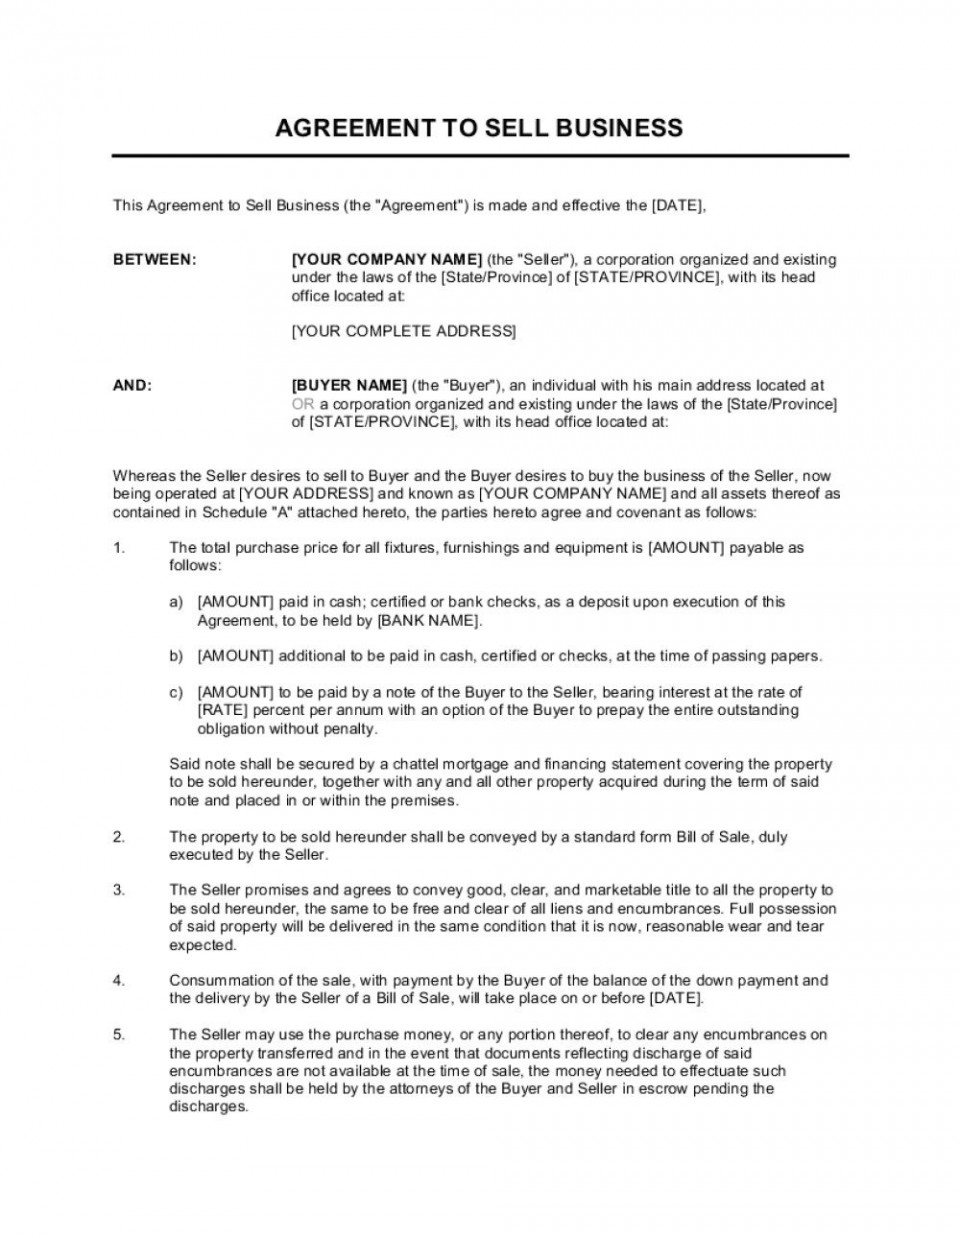 002 Stunning Busines Sale Agreement Template Example  Western Australia Free Uk Download South Africa960